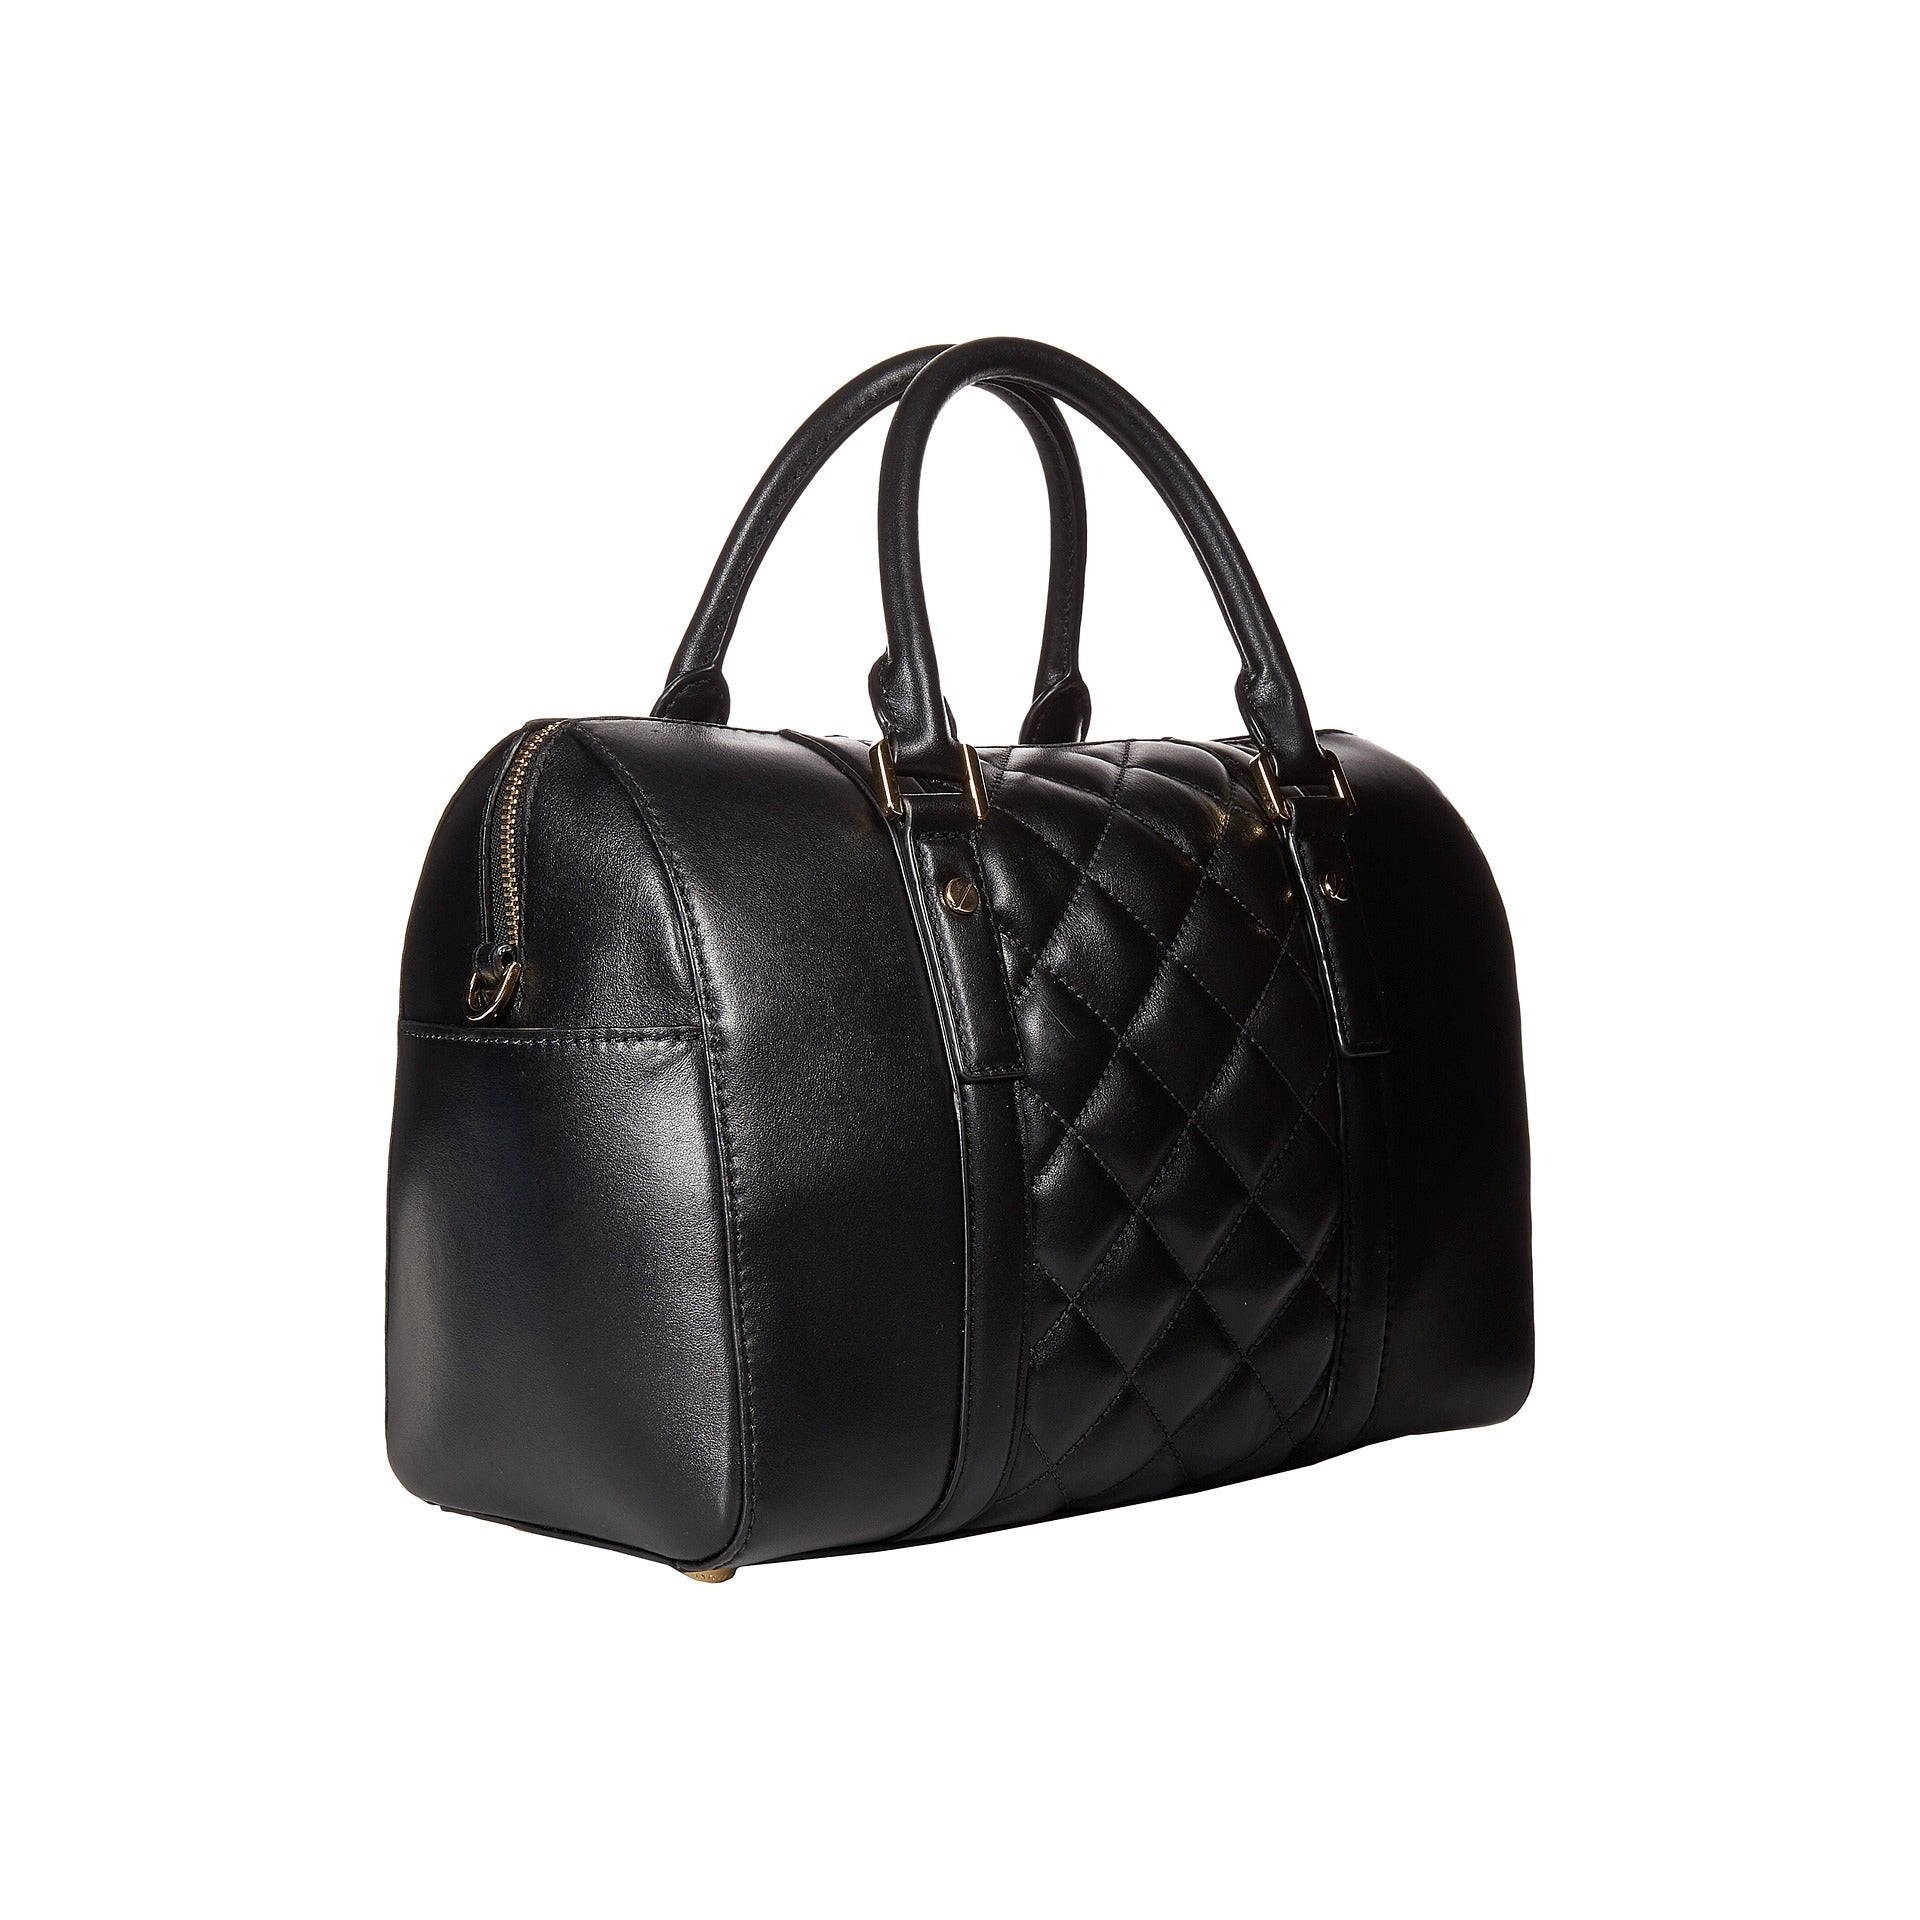 92908d64dc7b Shop Michael Michael Kors Grayson Medium Quilted Satchel - Black Gold -  Free Shipping Today - Overstock - 10824867